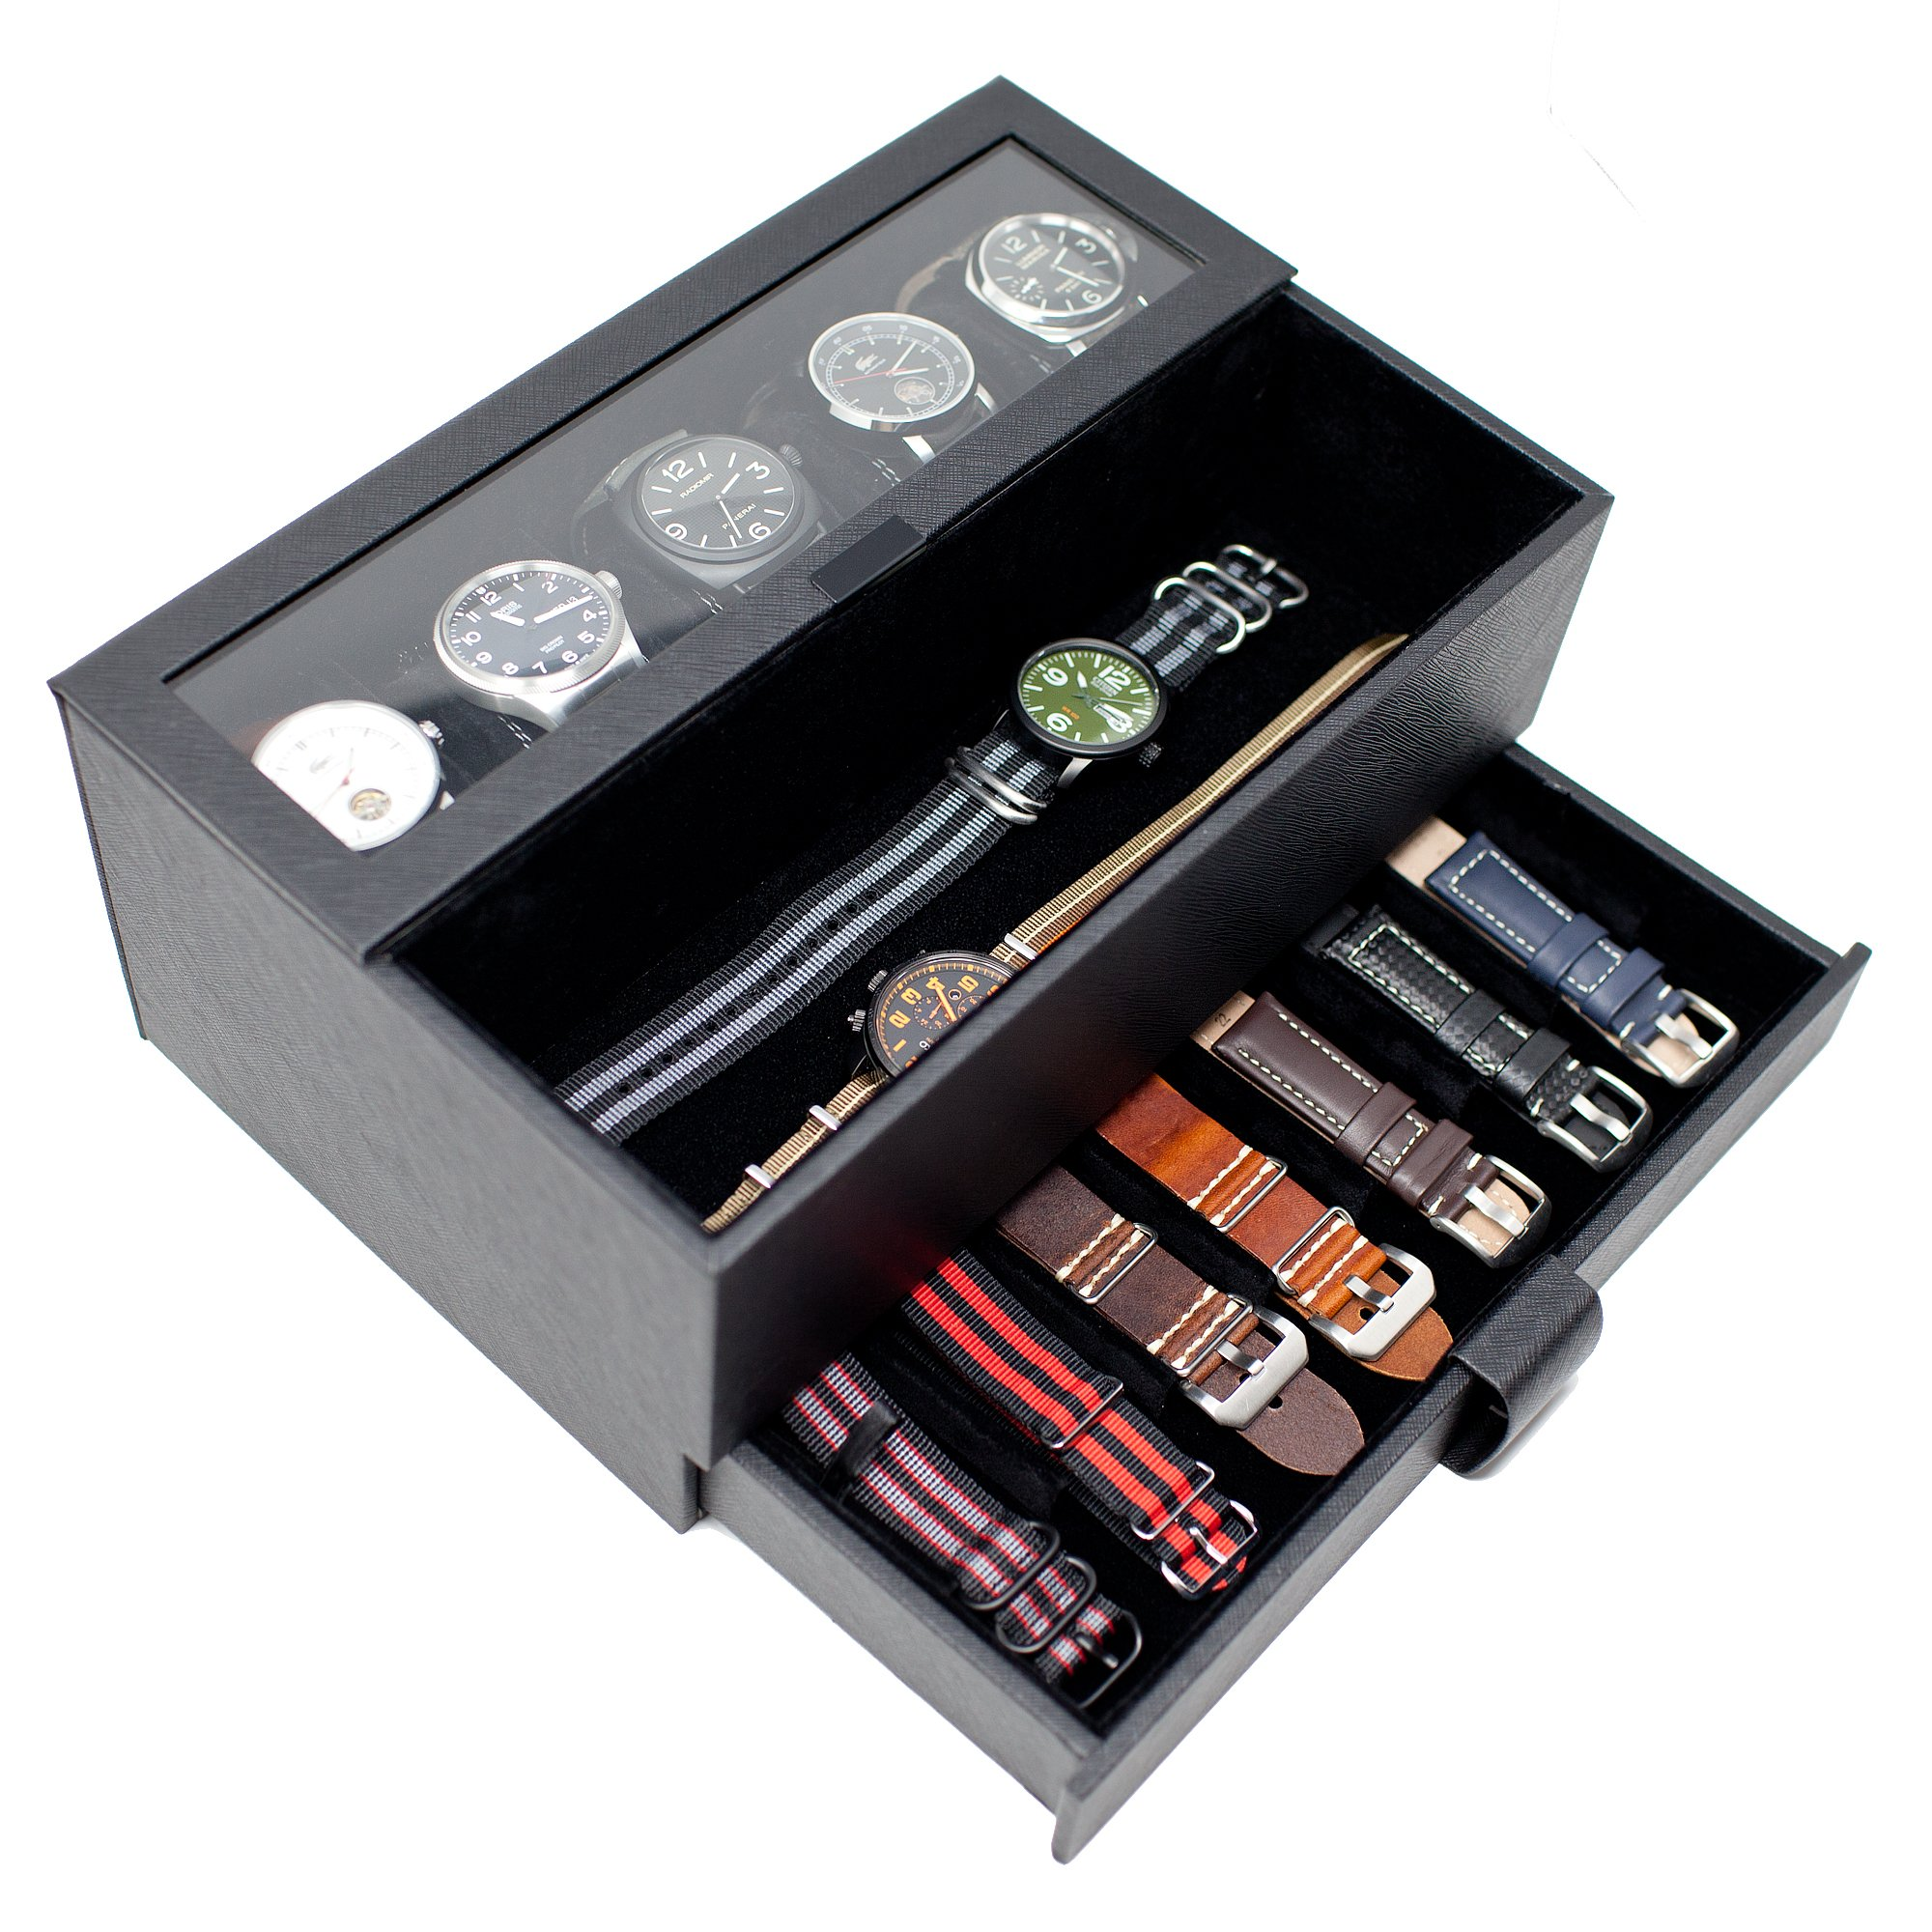 Caddy Bay Collection Watch Box w/Removable Watch Band Display Case & Valet Tray Holds 5 Watches - Black